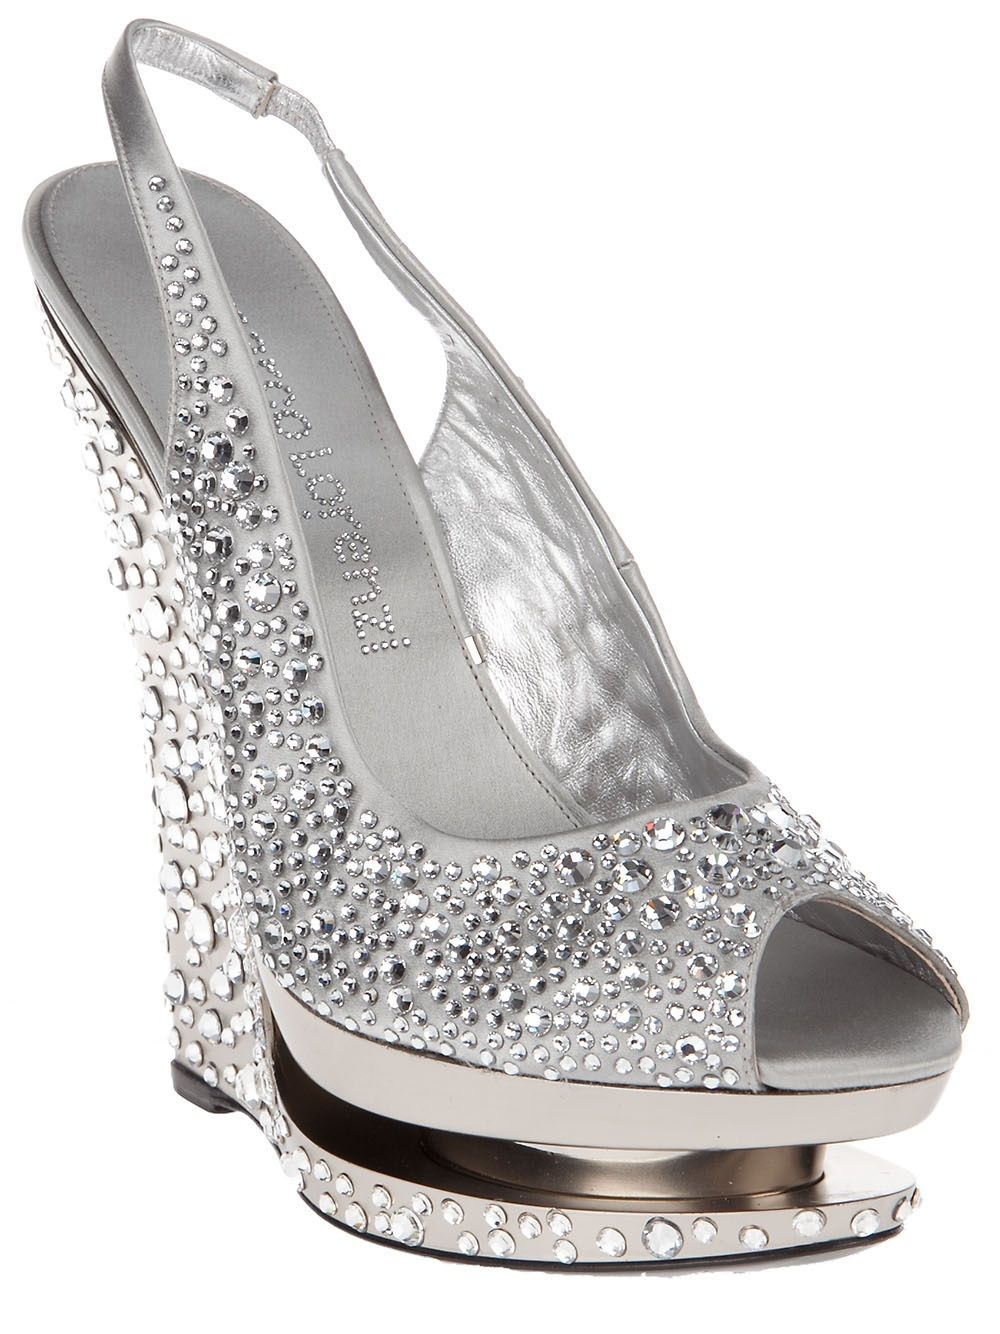 gianmarco lorenzi collector crystal wedge shoe shoes shoes rh pinterest com